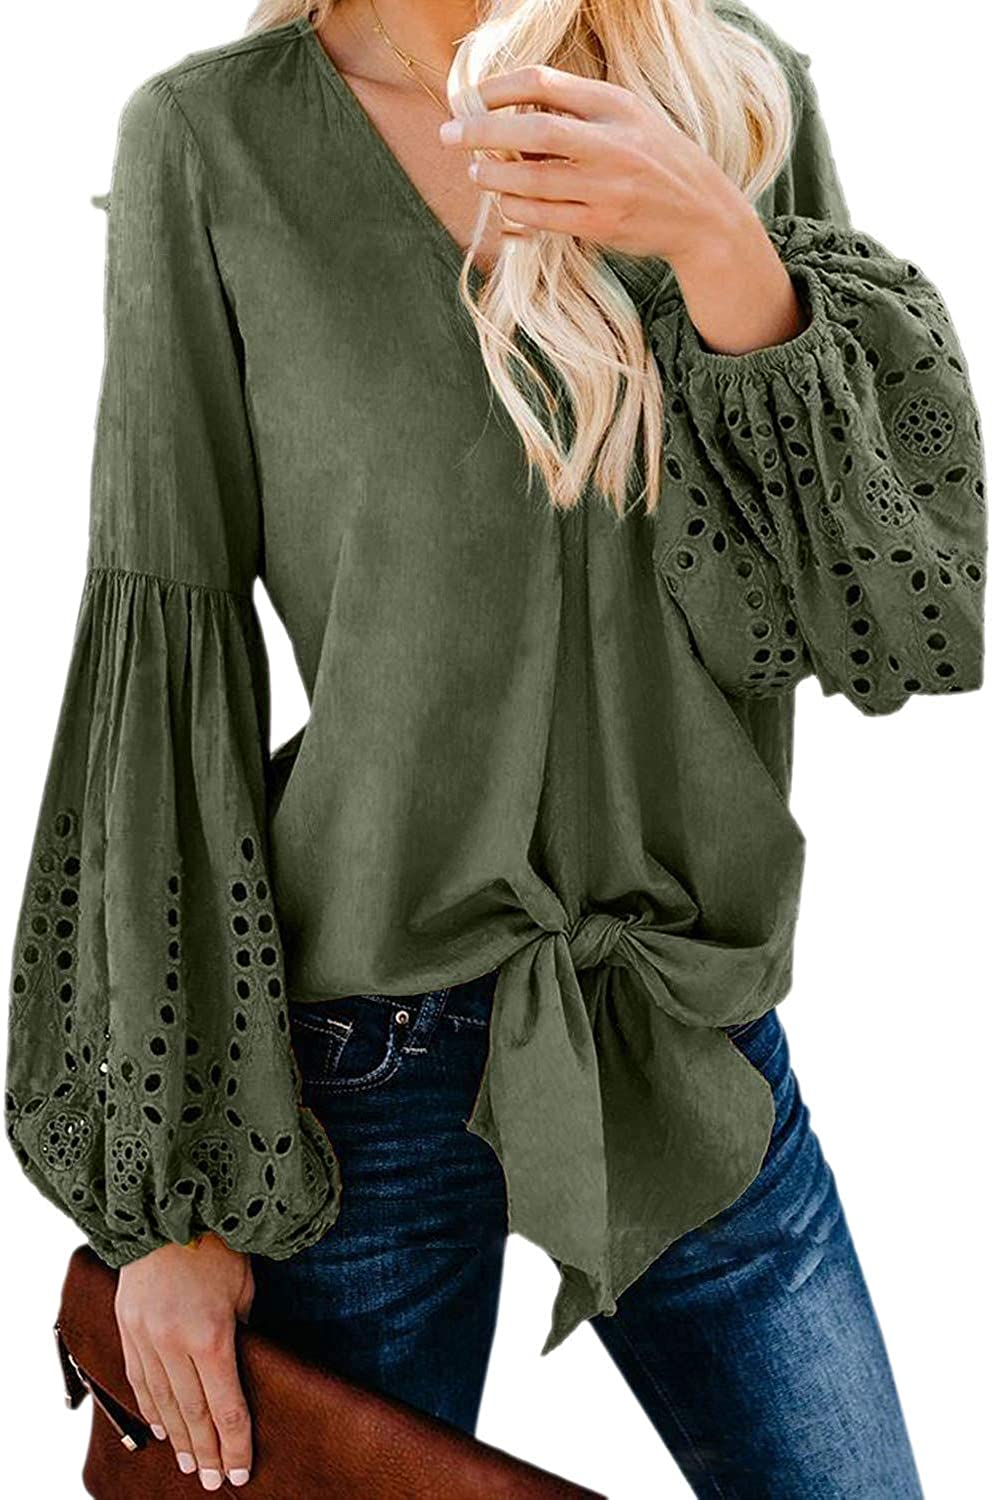 Xswsy XG Womens Casual V Neck Balloon Sleeve Hollow Out Tie Knot Loose Shirt Tops